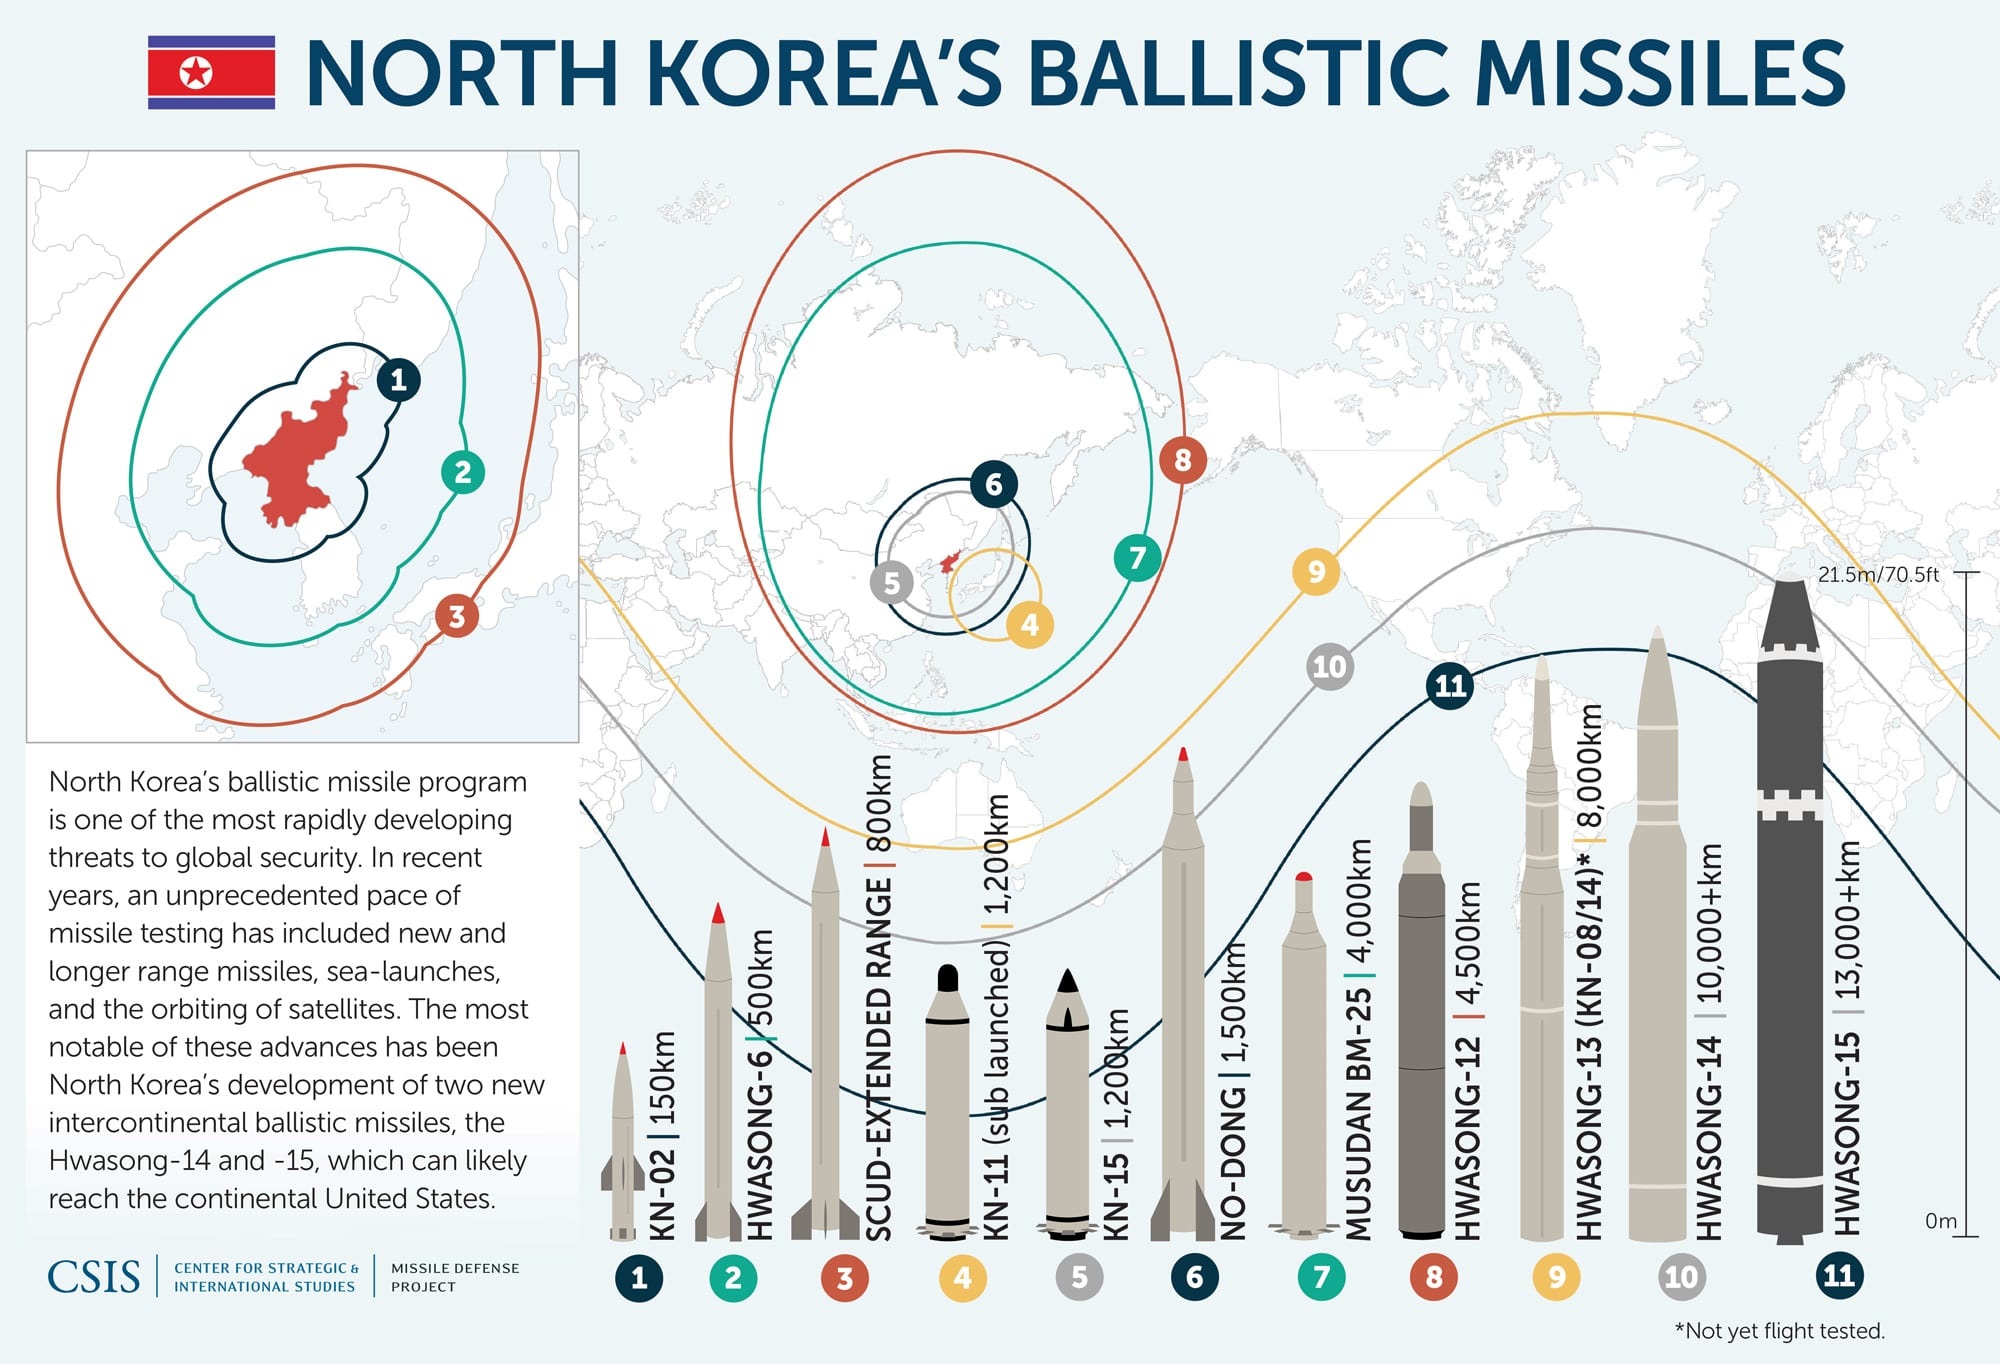 Image Center for Strategic and international Studies estimates of North Korean missile ranges. (CSIS Image)